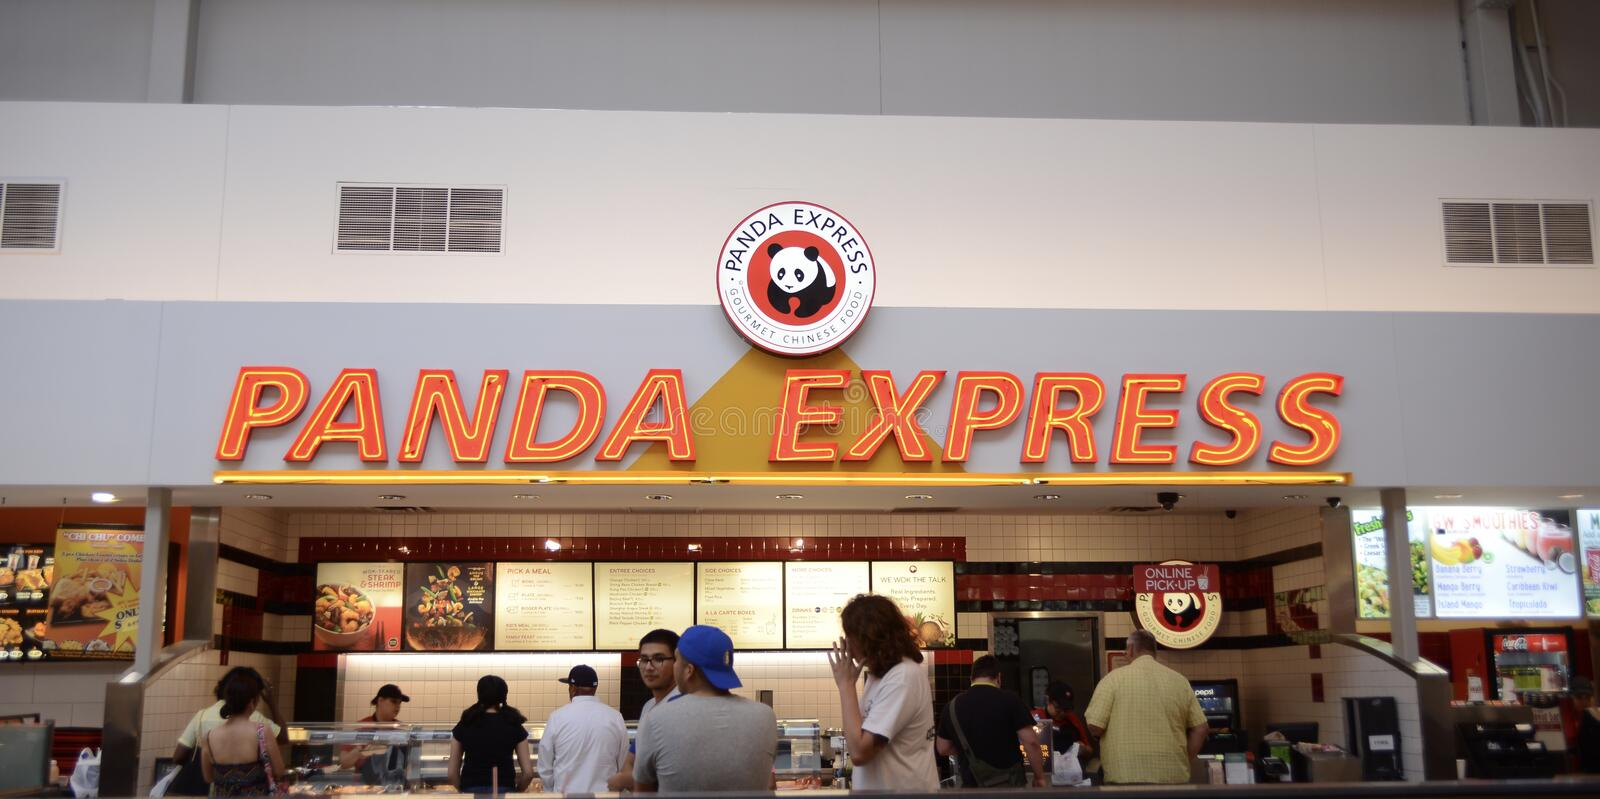 Panda Express Restuarant in a Mall Food Court. The Panda Express menu includes a variety of entrees with Chinese and Sichuan influences. All are wok-cooked stock photography